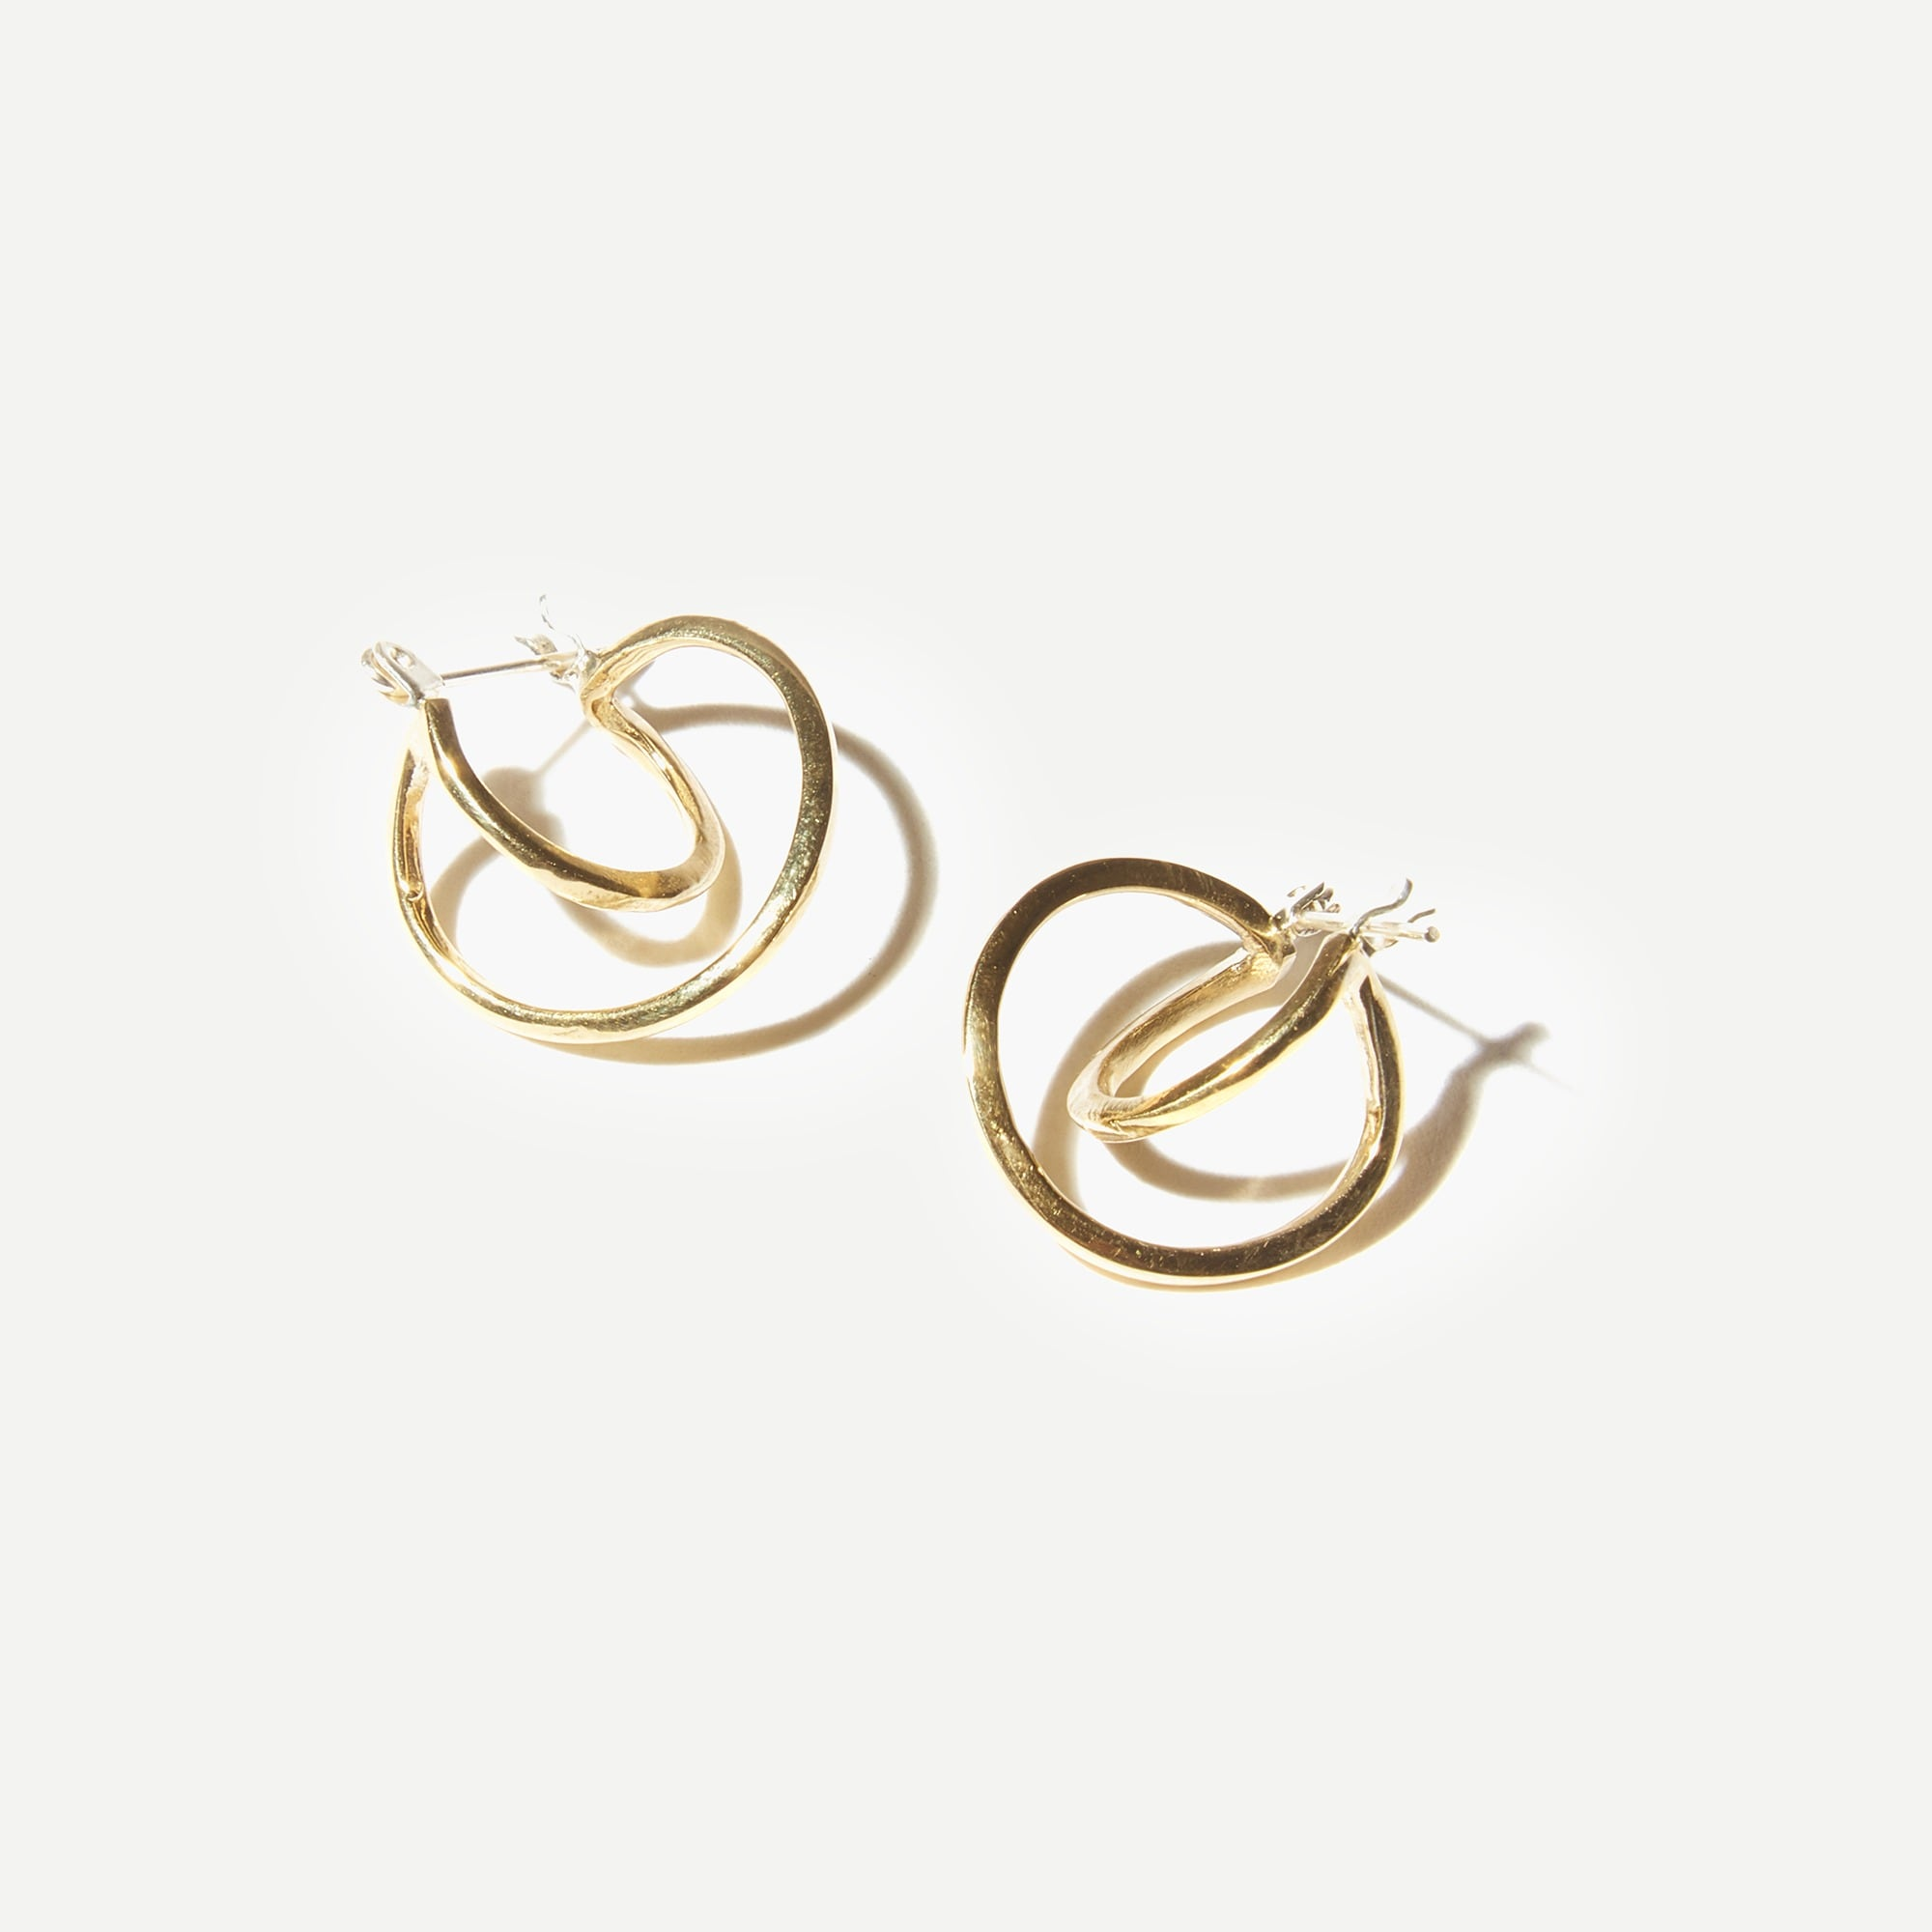 Odette New York® Mini Risom hoop earrings women j.crew in good company c